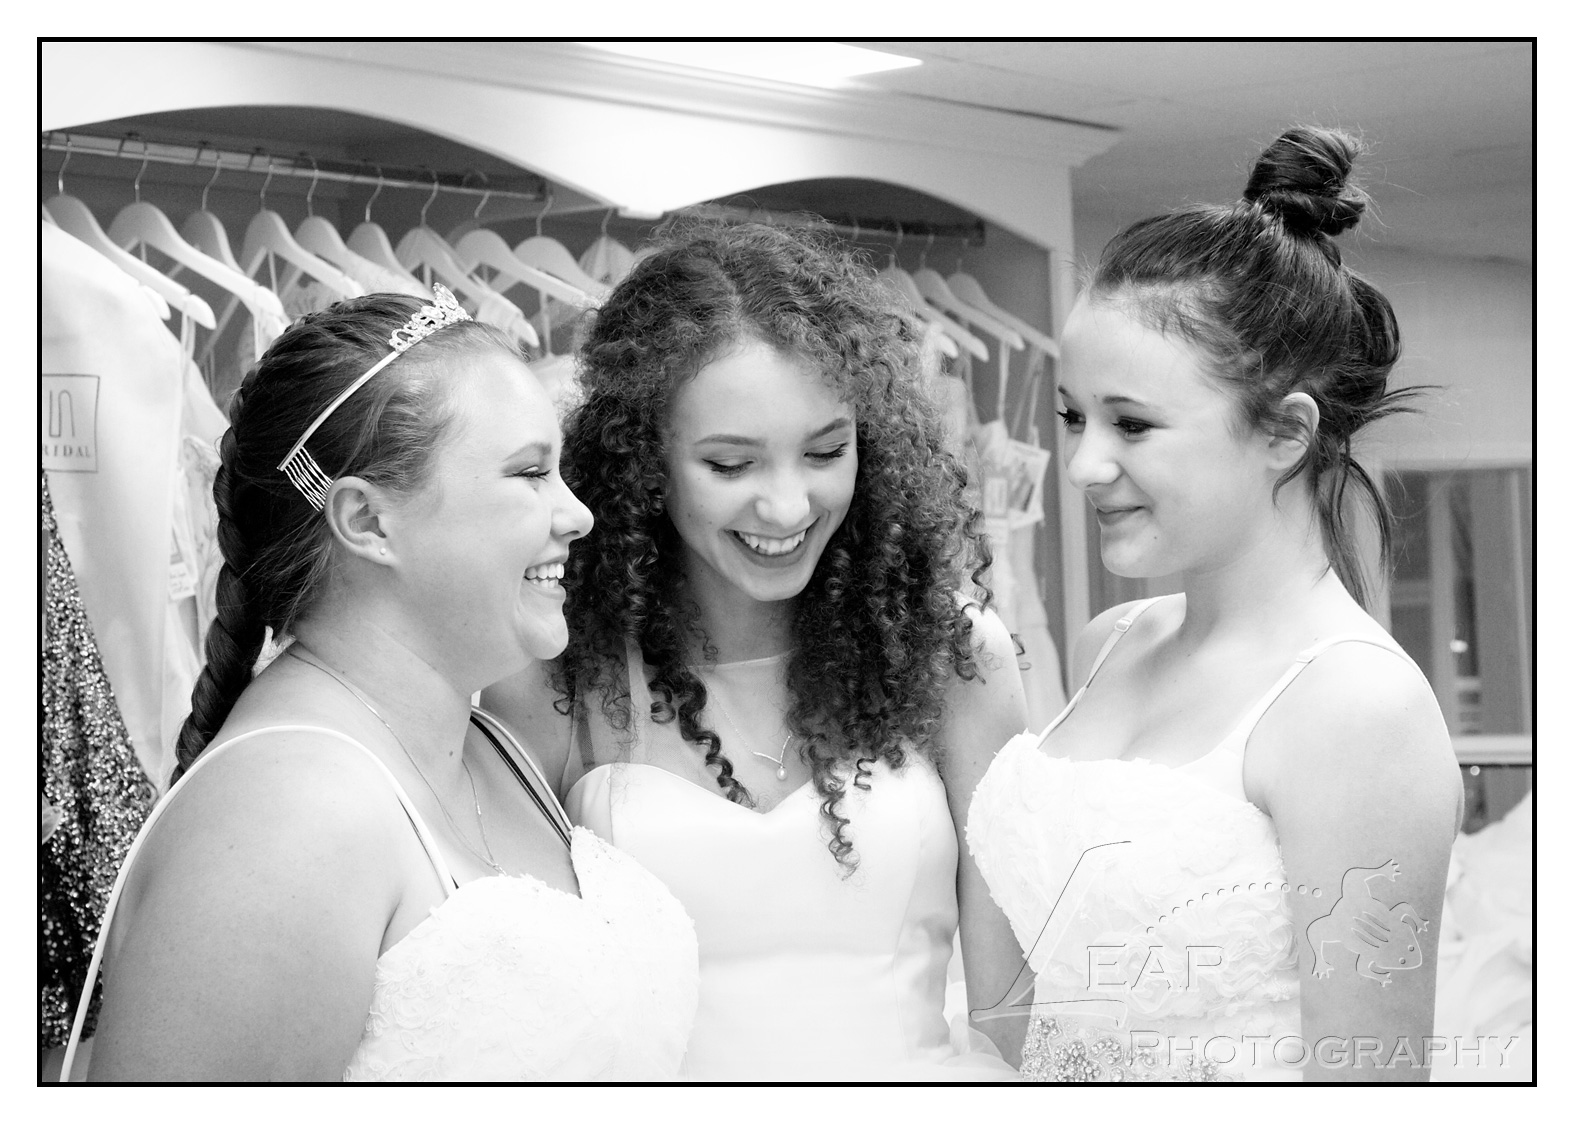 3 sisters laughing, in bridal gowns